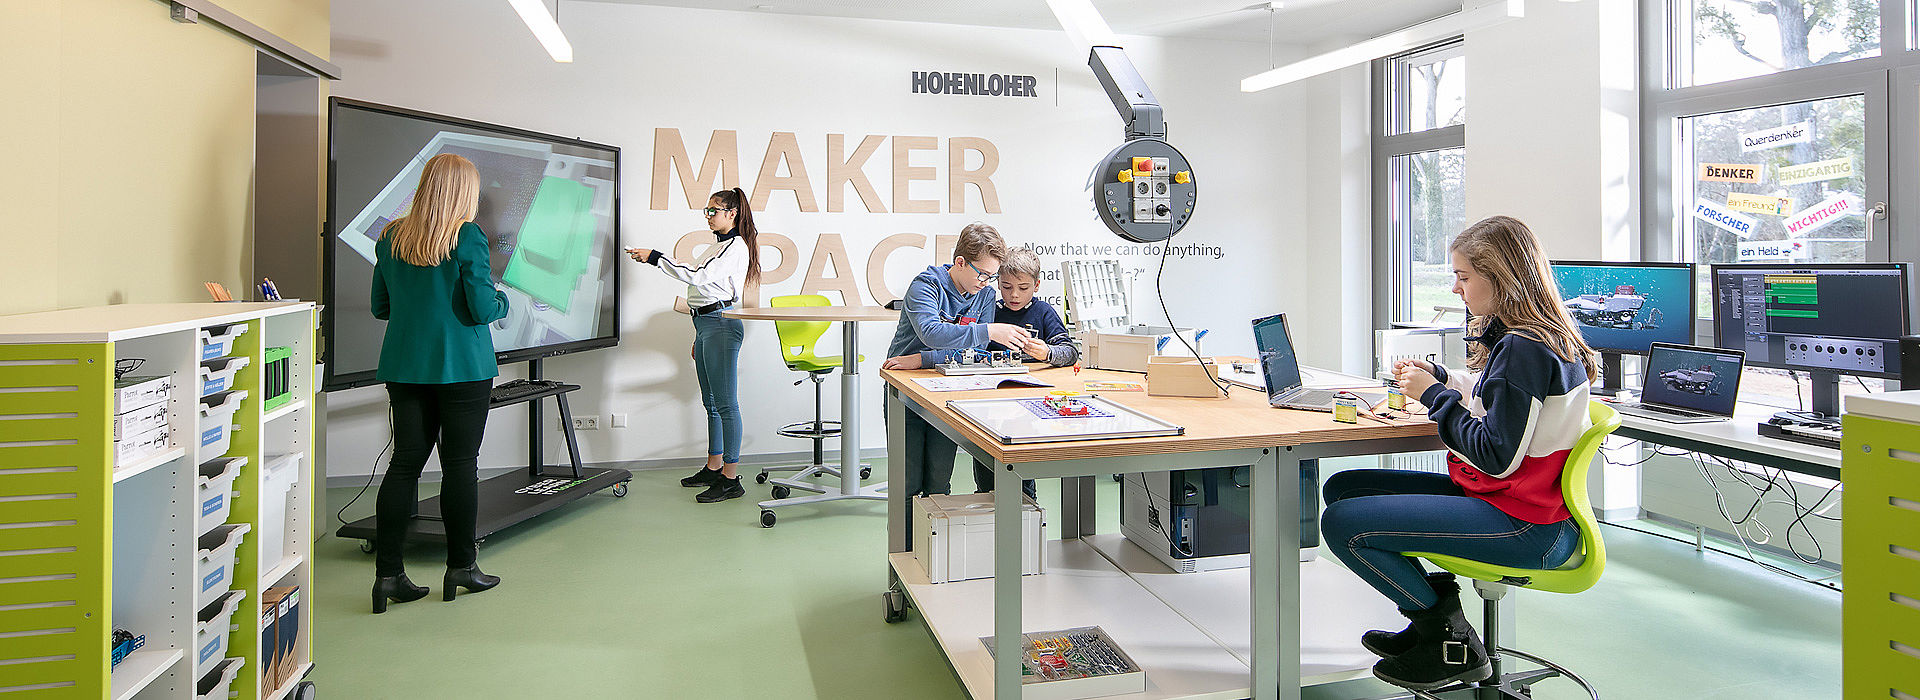 Image: Concentration and Exploration at Makerspace